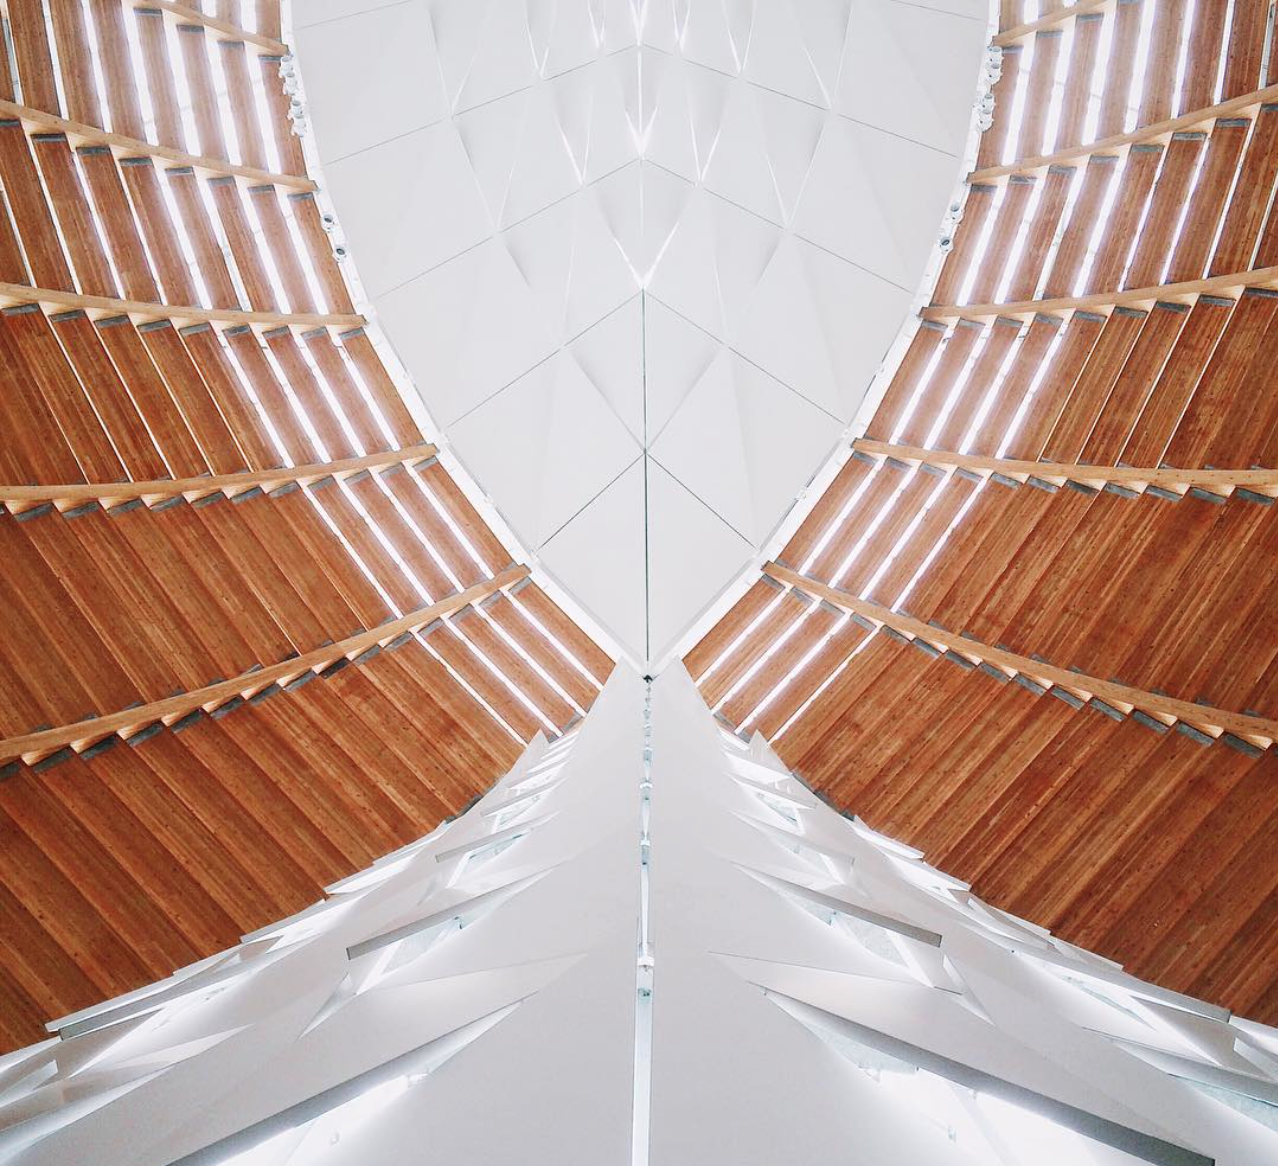 Ceiling of the Cathedral of Christ the Light in Oakland